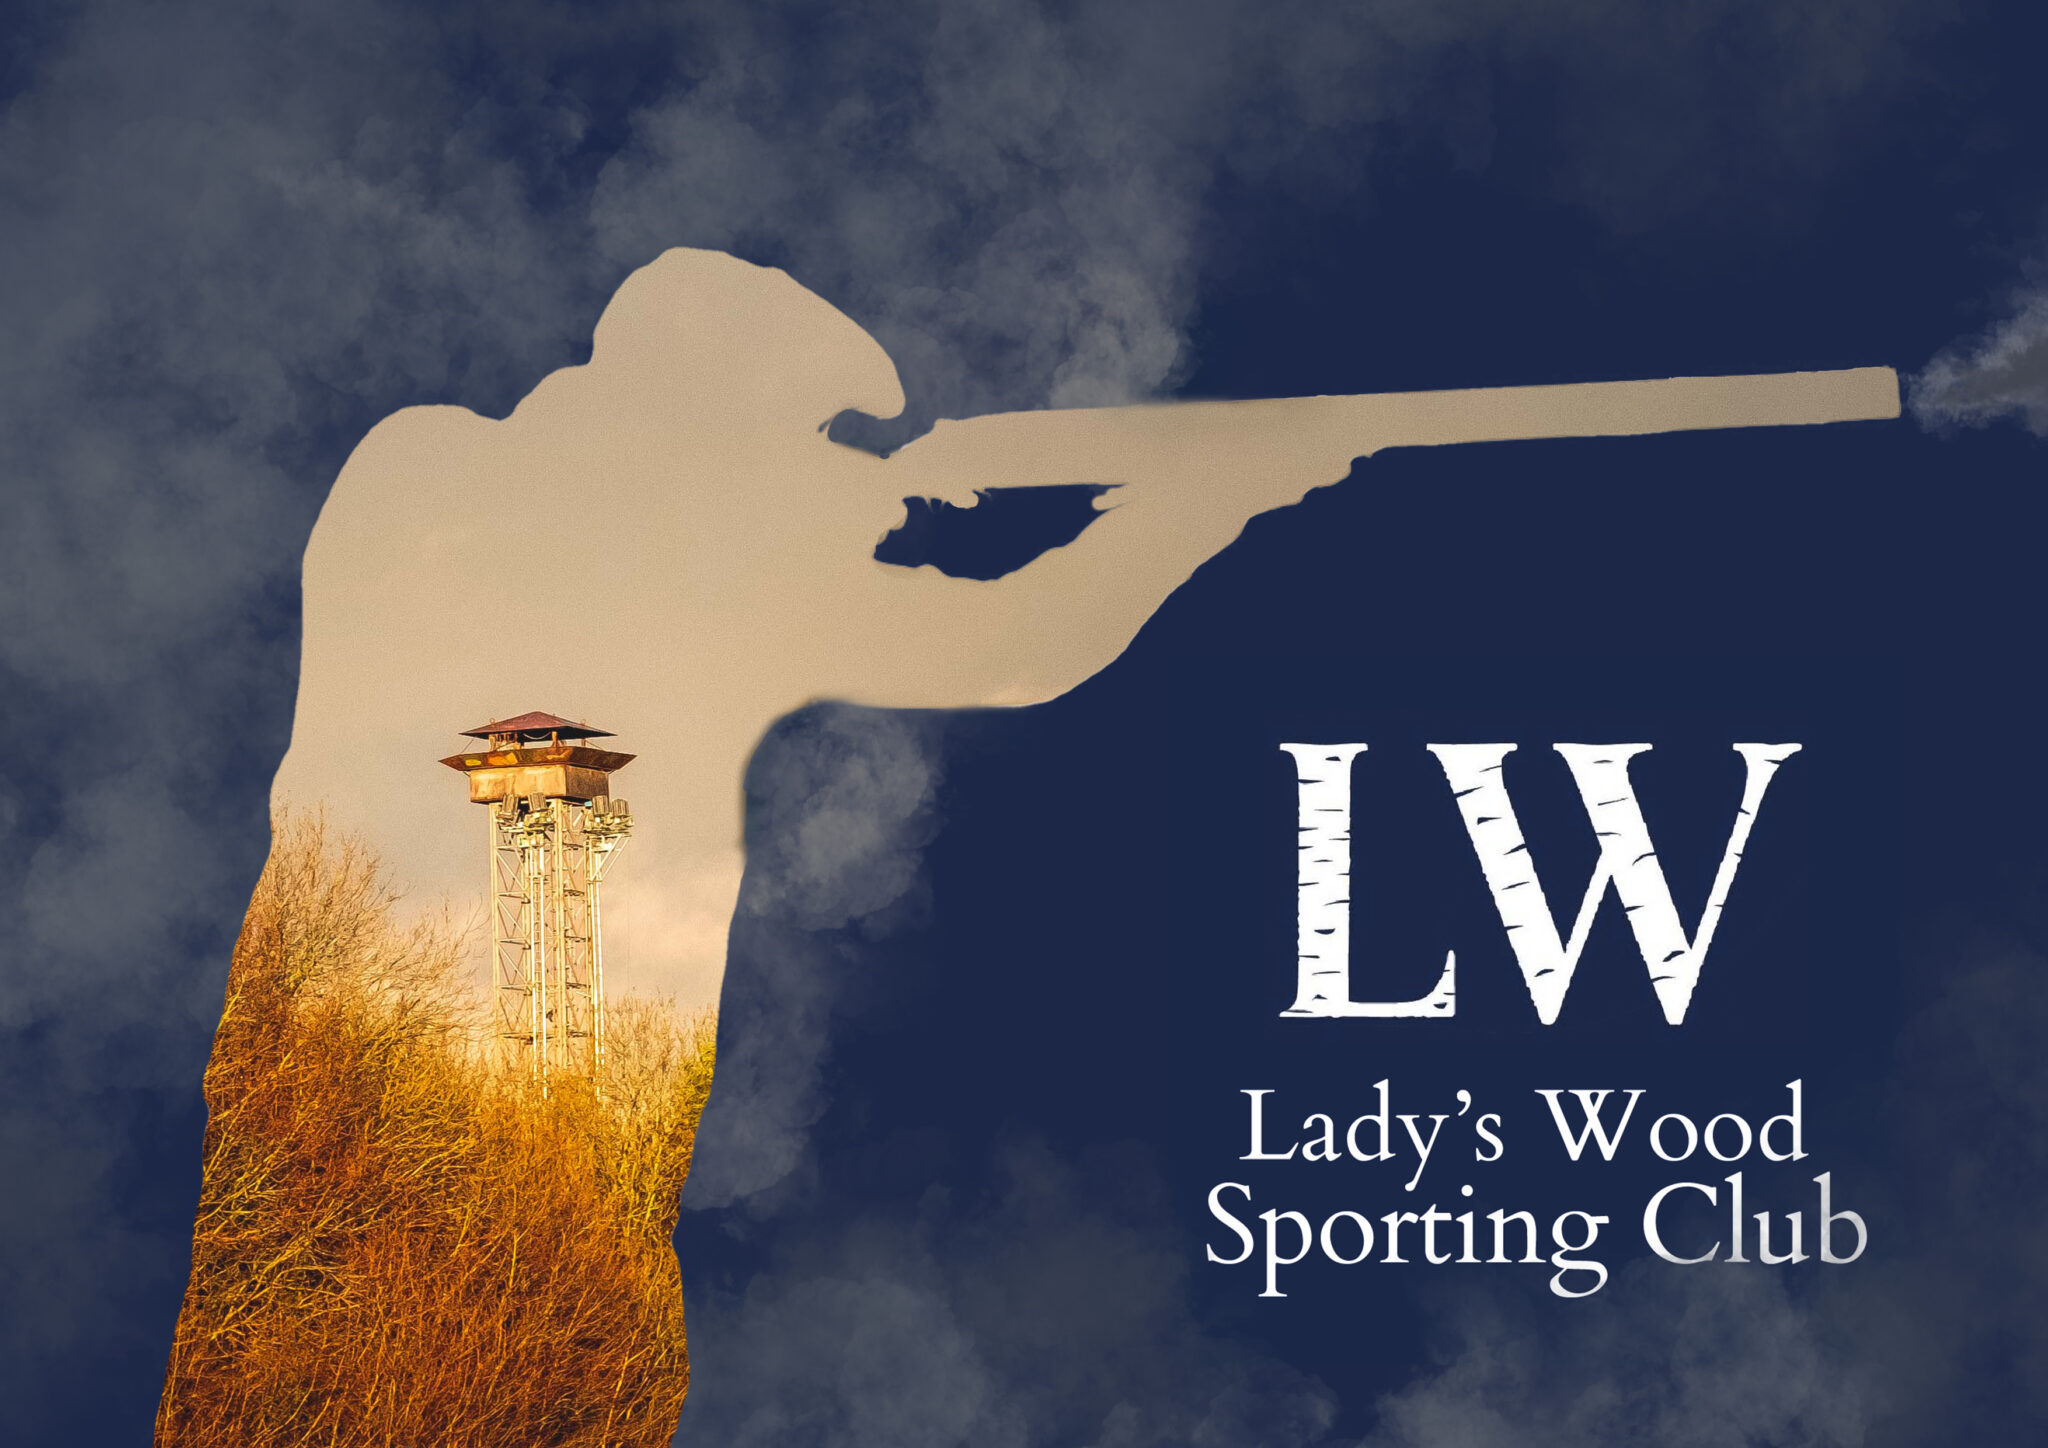 Lady's Wood Sporting Club Graphic